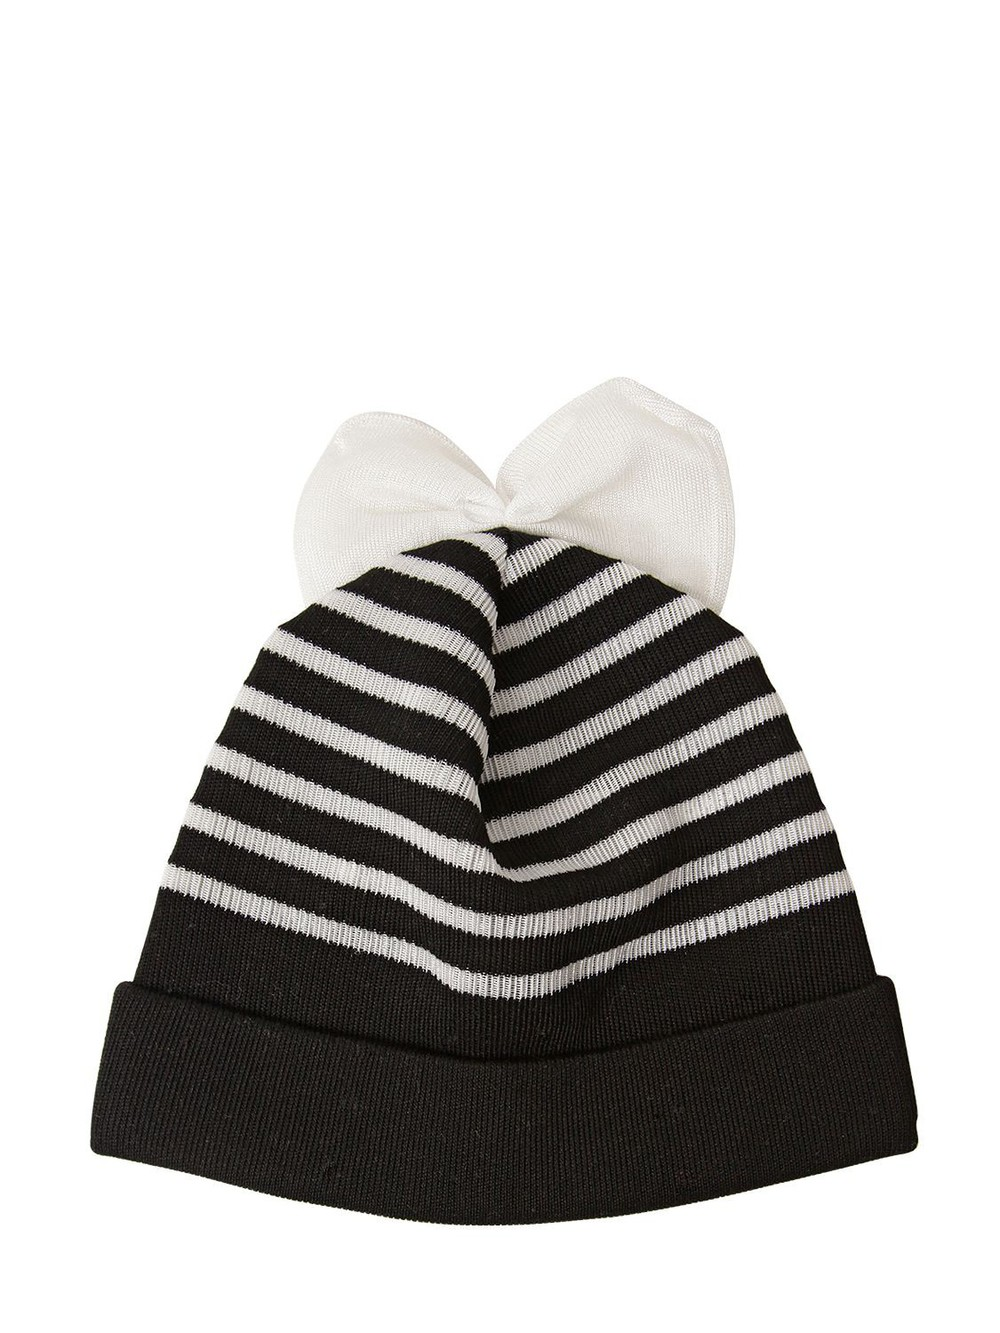 FEDERICA MORETTI Striped Wool Beanie Hat With Bow in black / white